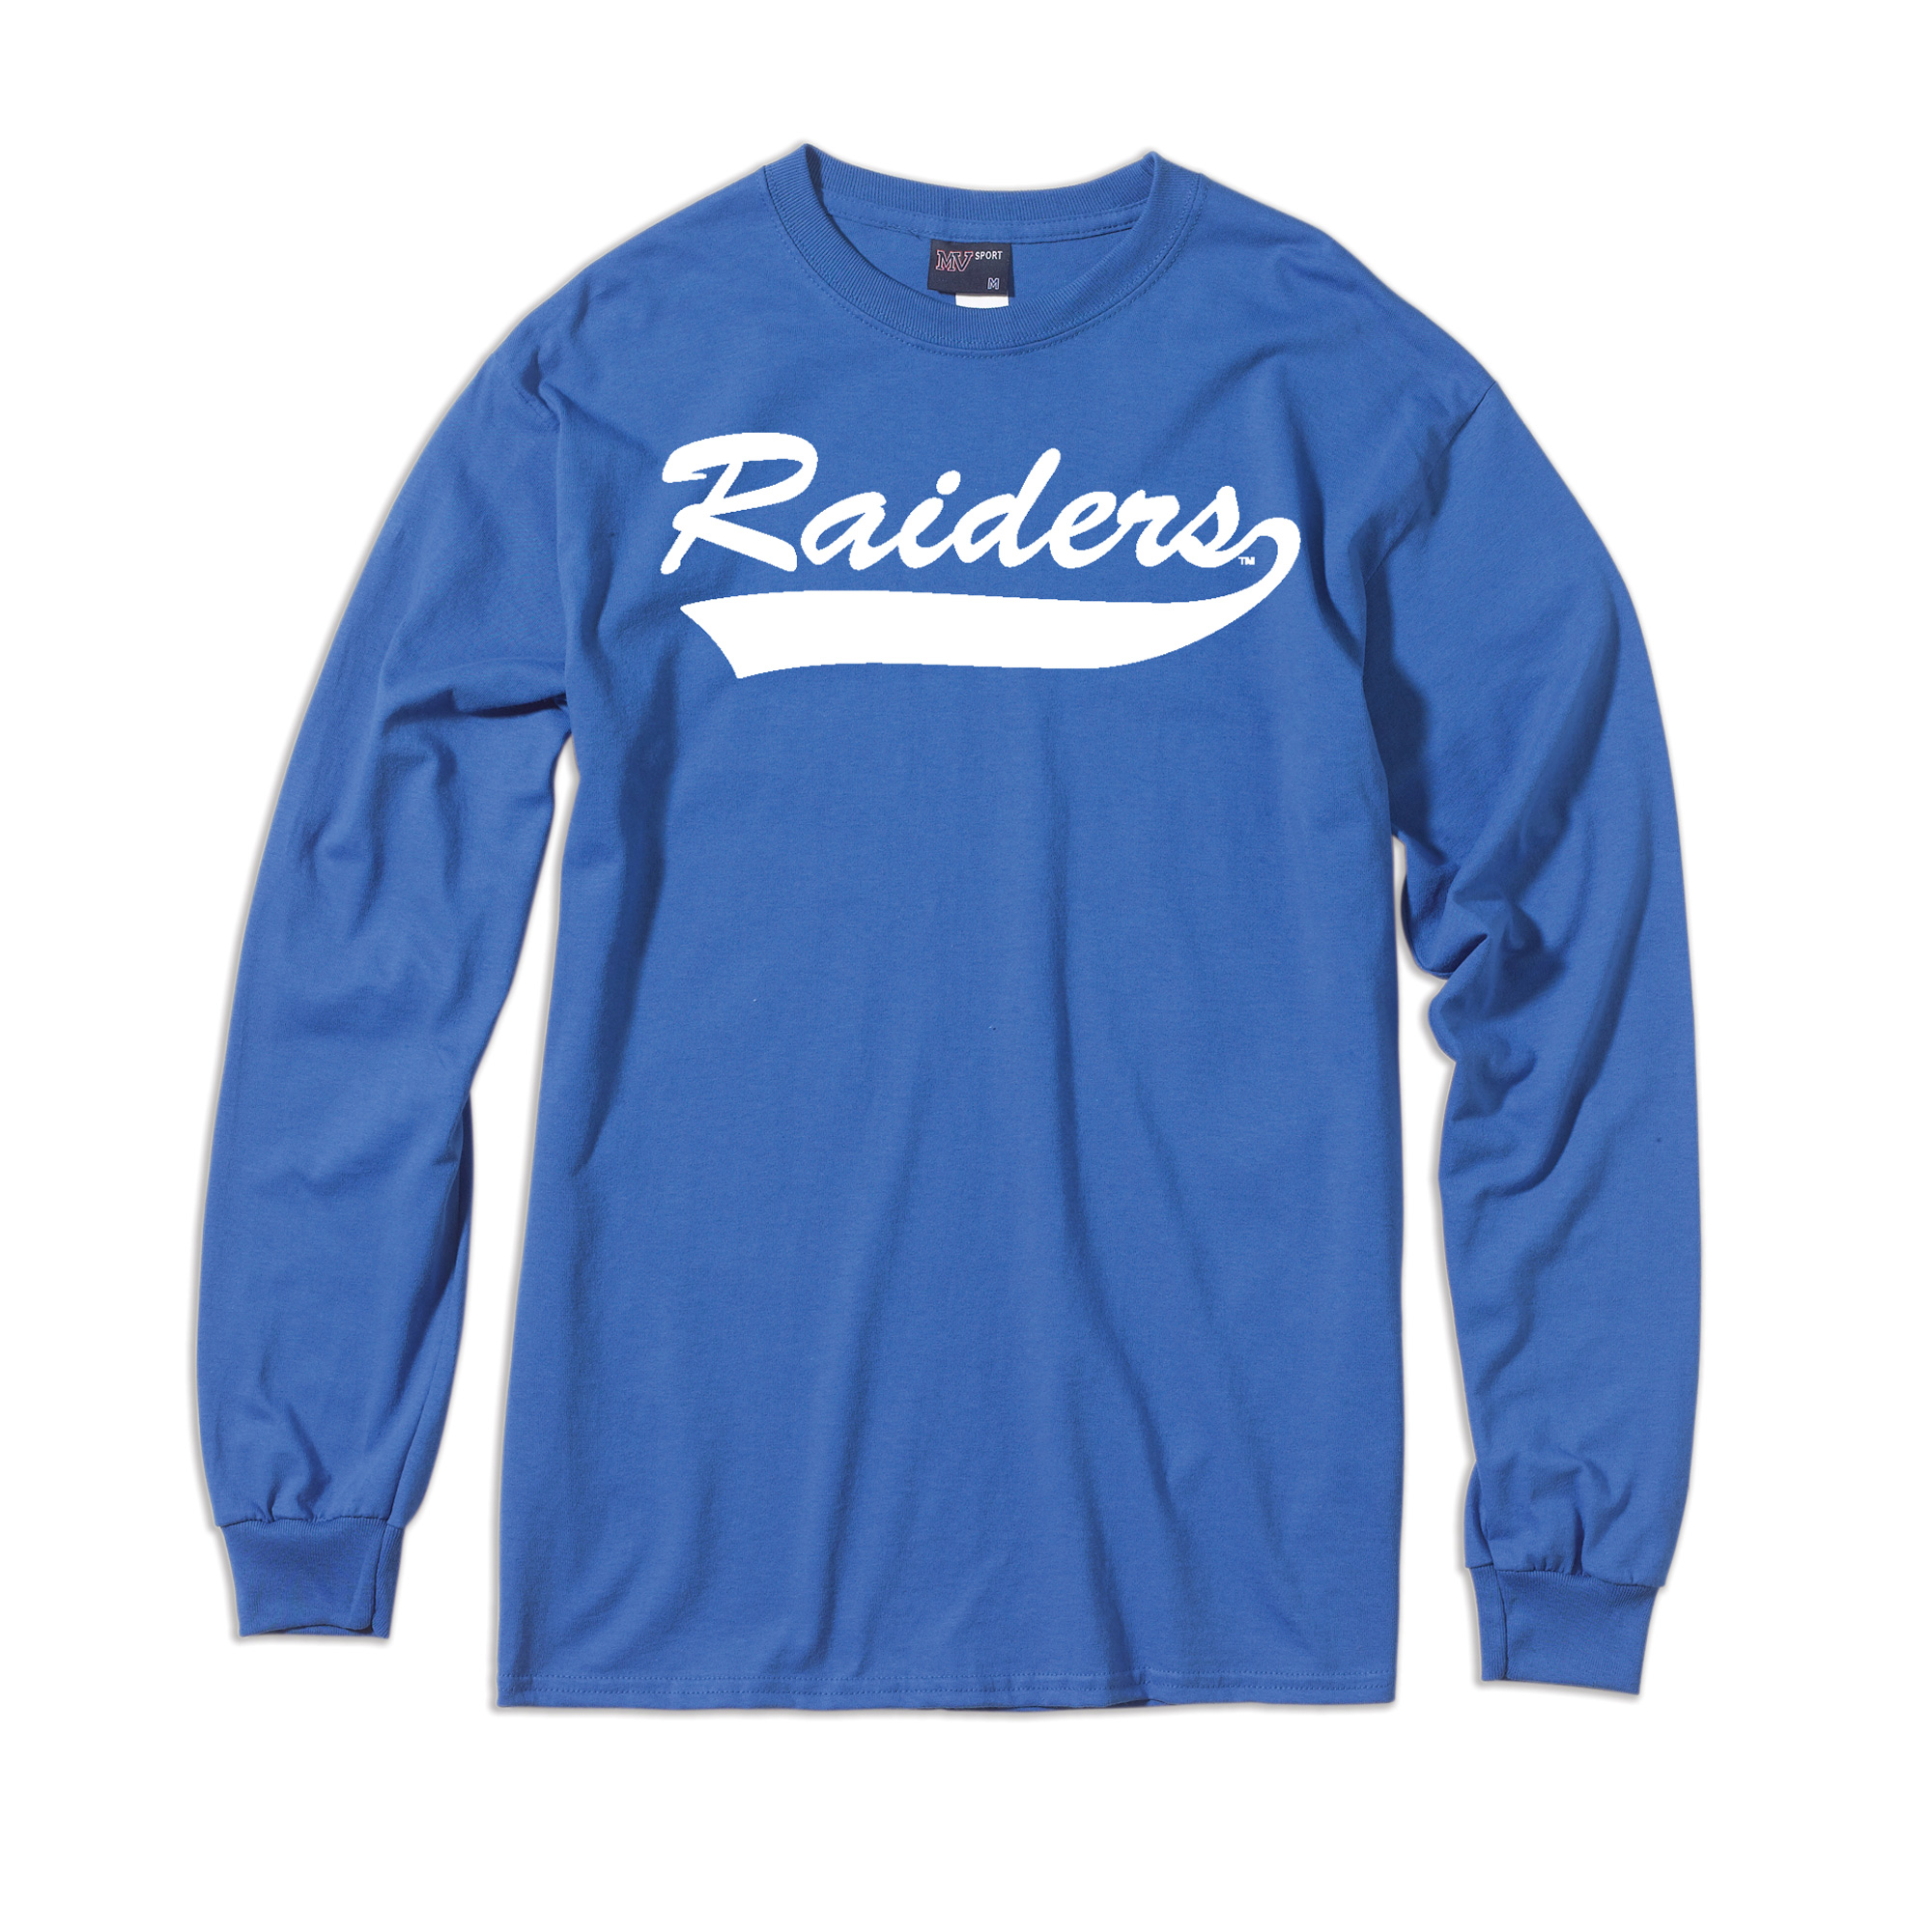 Raiders Vintage Script Long Sleeve Shirt